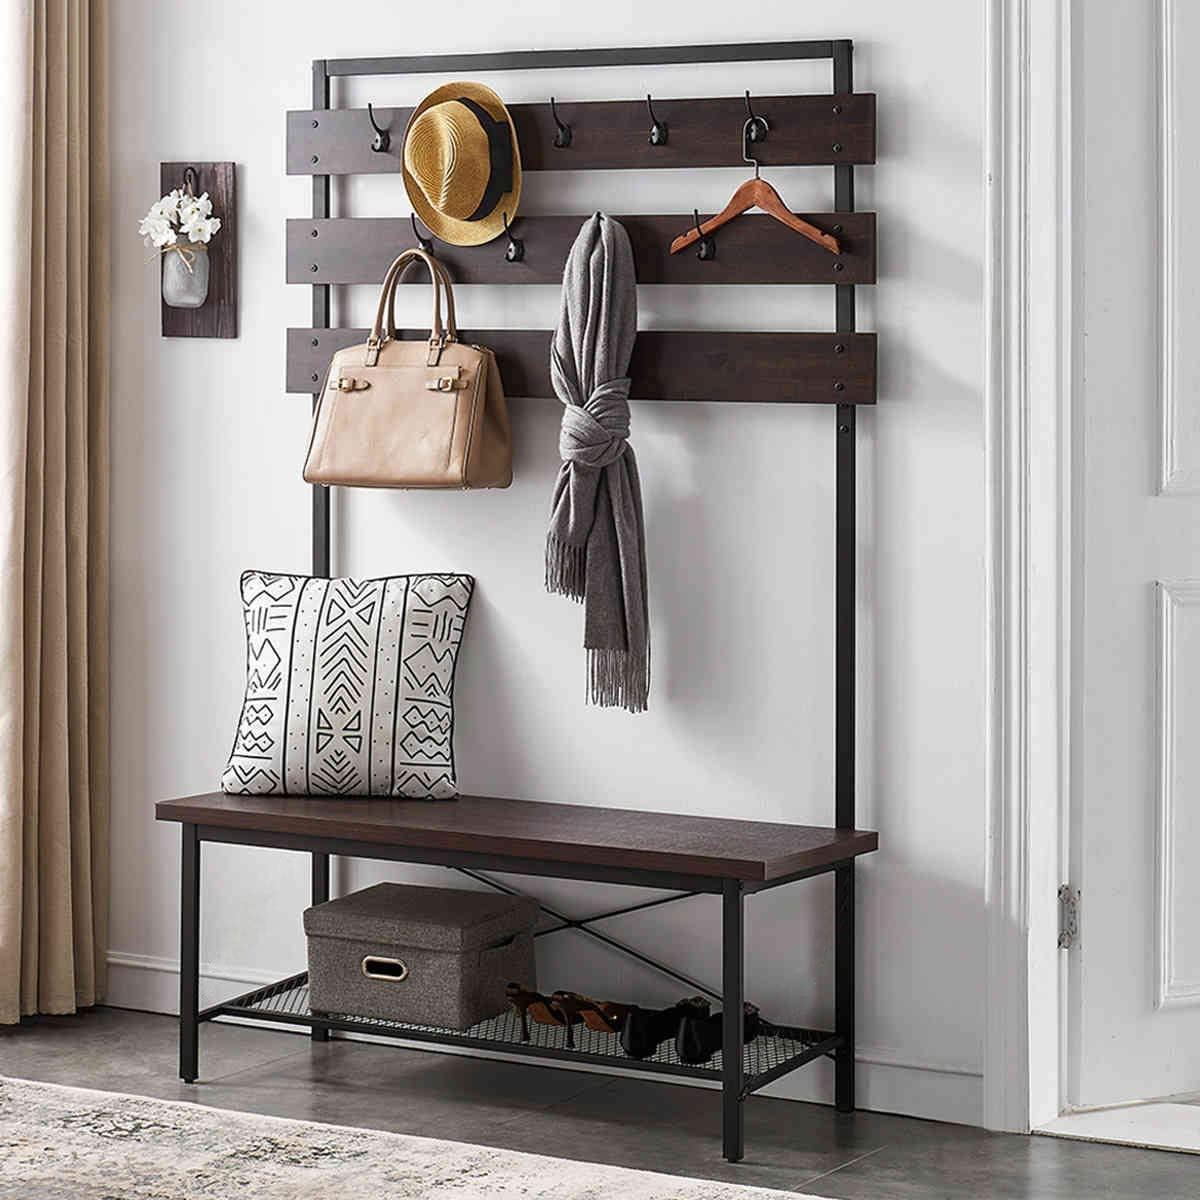 FELLYTN Industrial Hall Tree for Entryway, Wood and Metal Coat Rack with Shoe Bench, Storage Shelf Organizer Accent Furniture with Metal Frame, Espresso 71 Inch